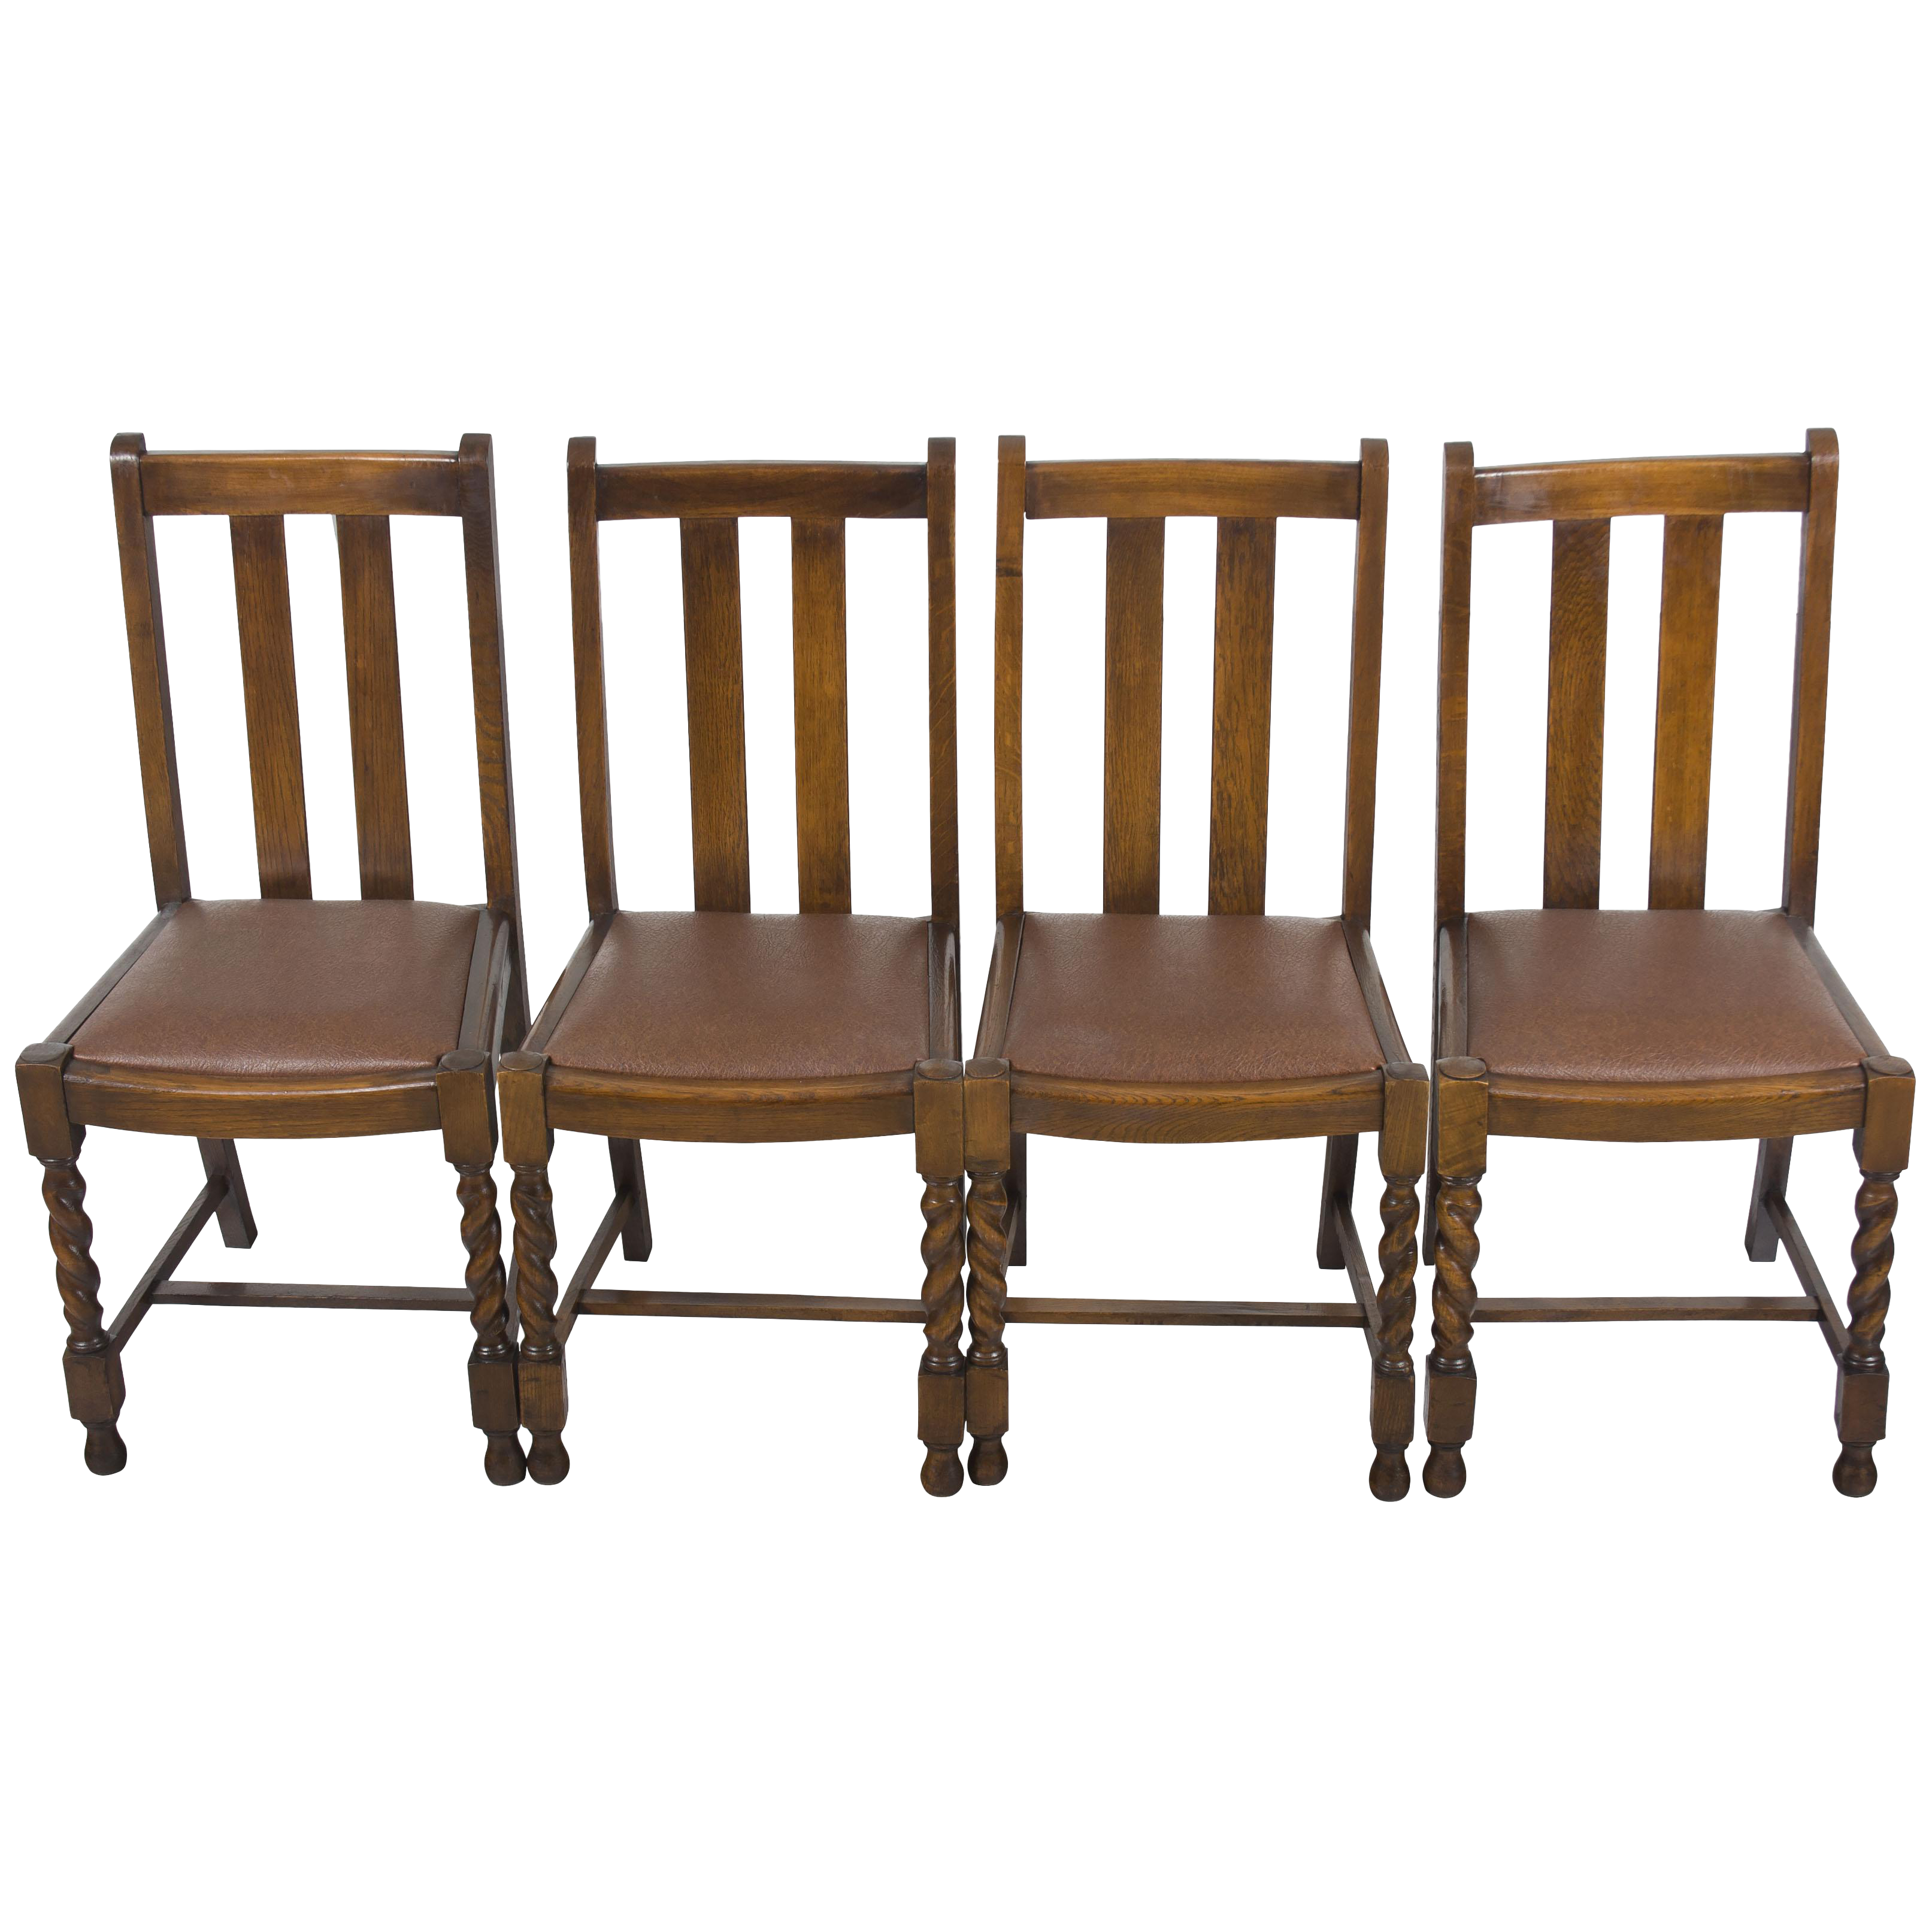 Super 1940S Vintage Barley Twist Dining Room Or Kitchen Chairs Set Of 4 Pabps2019 Chair Design Images Pabps2019Com